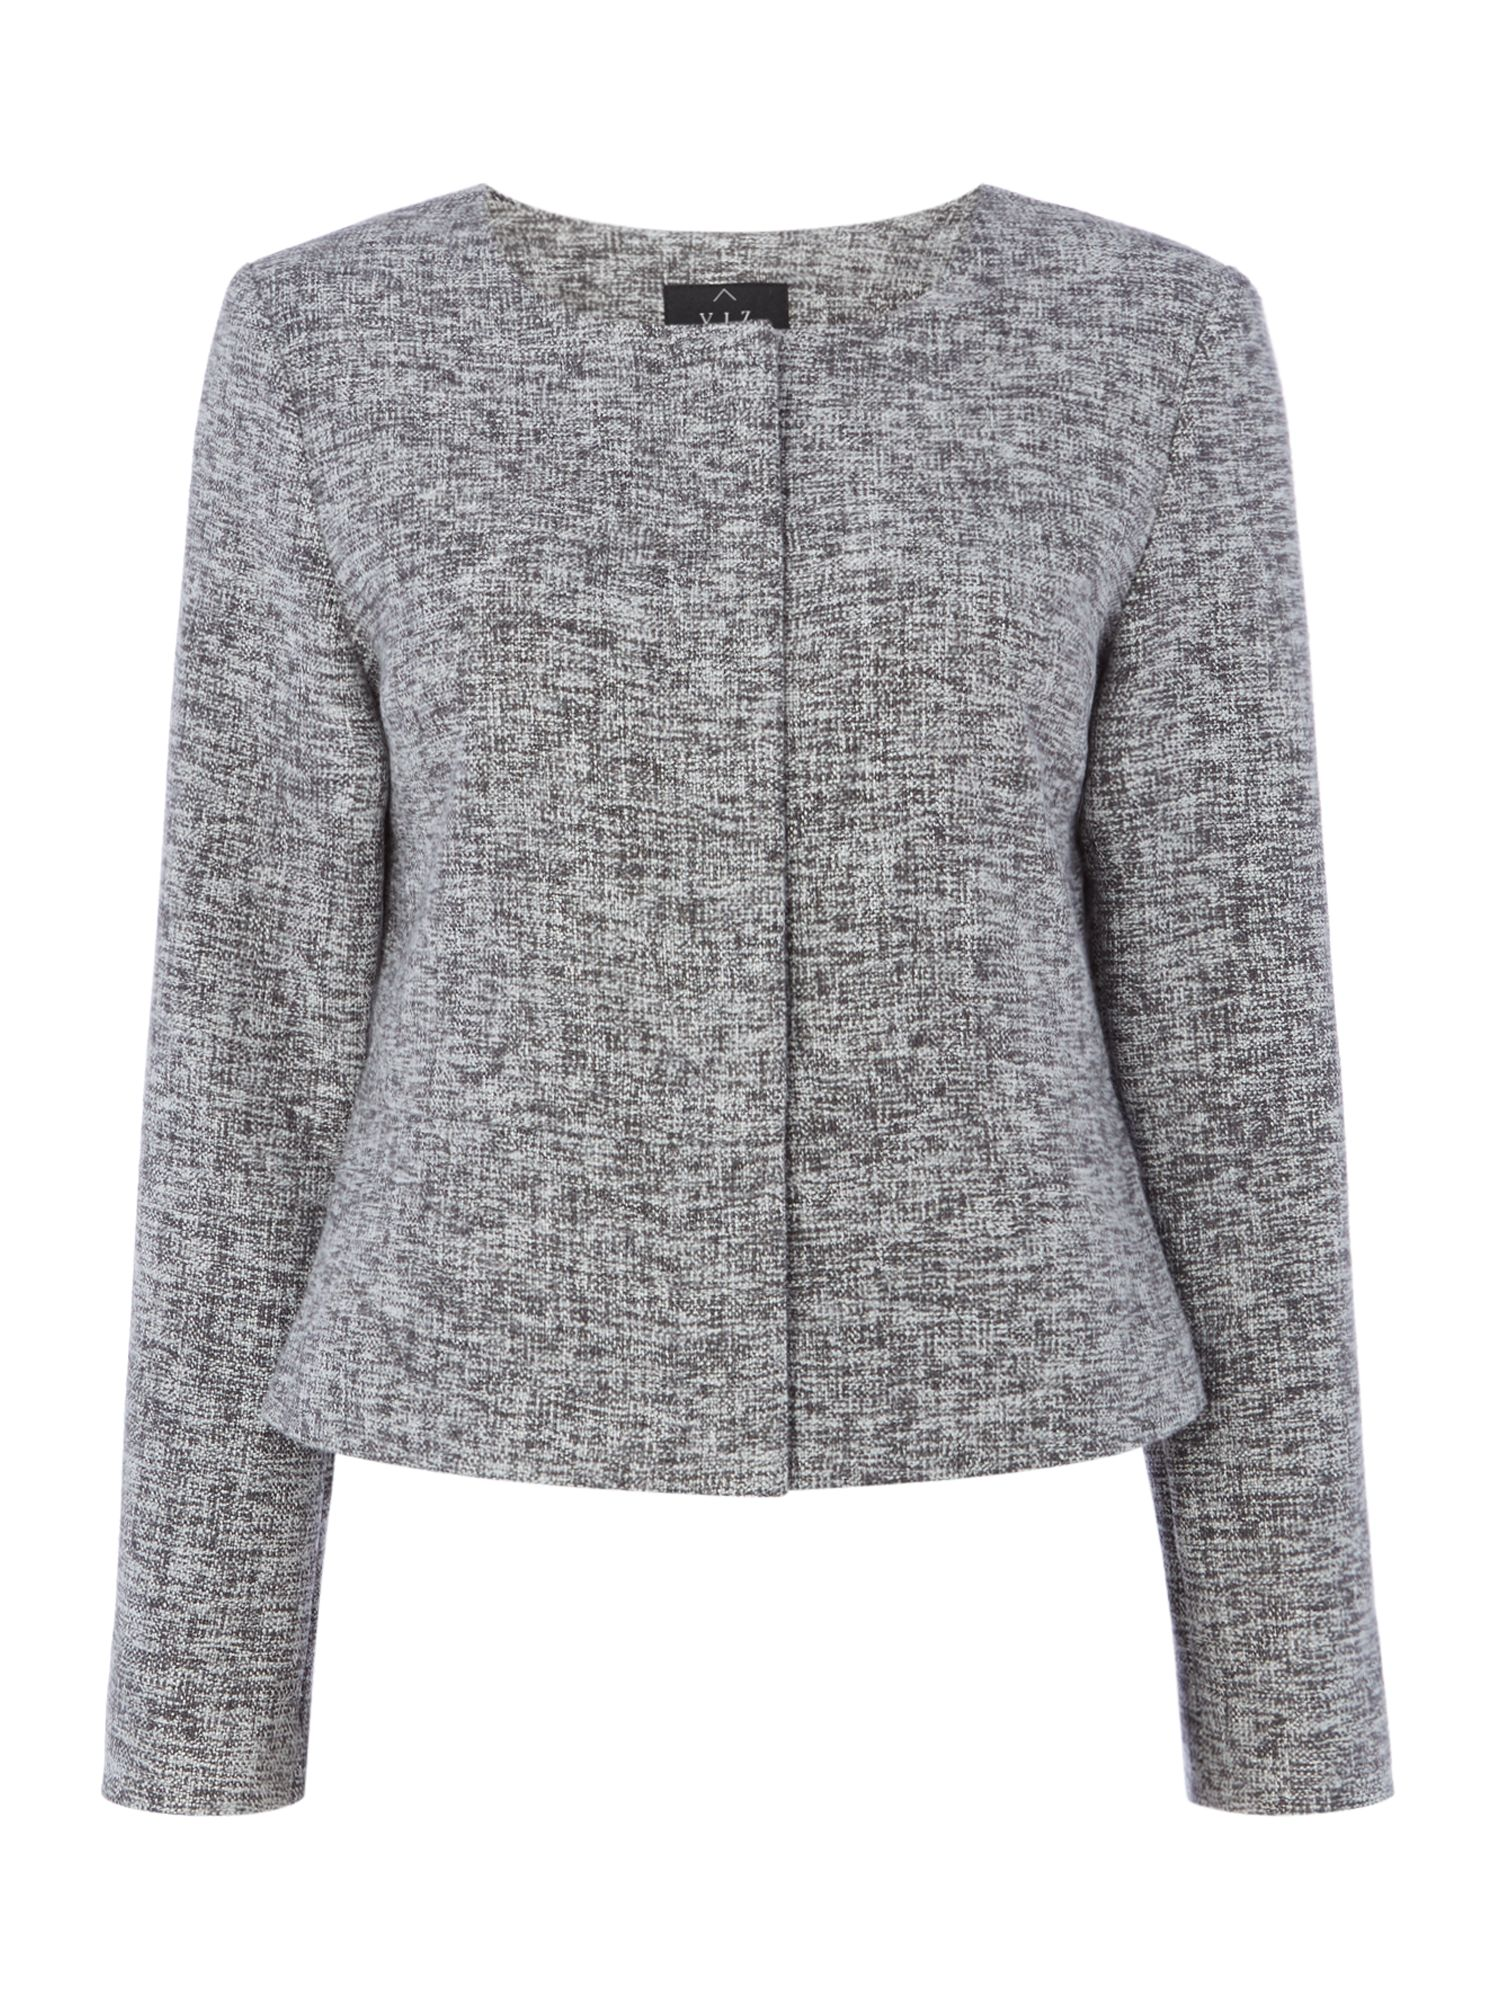 VIZ-A-VIZ Cropped Textured Jacket, Grey